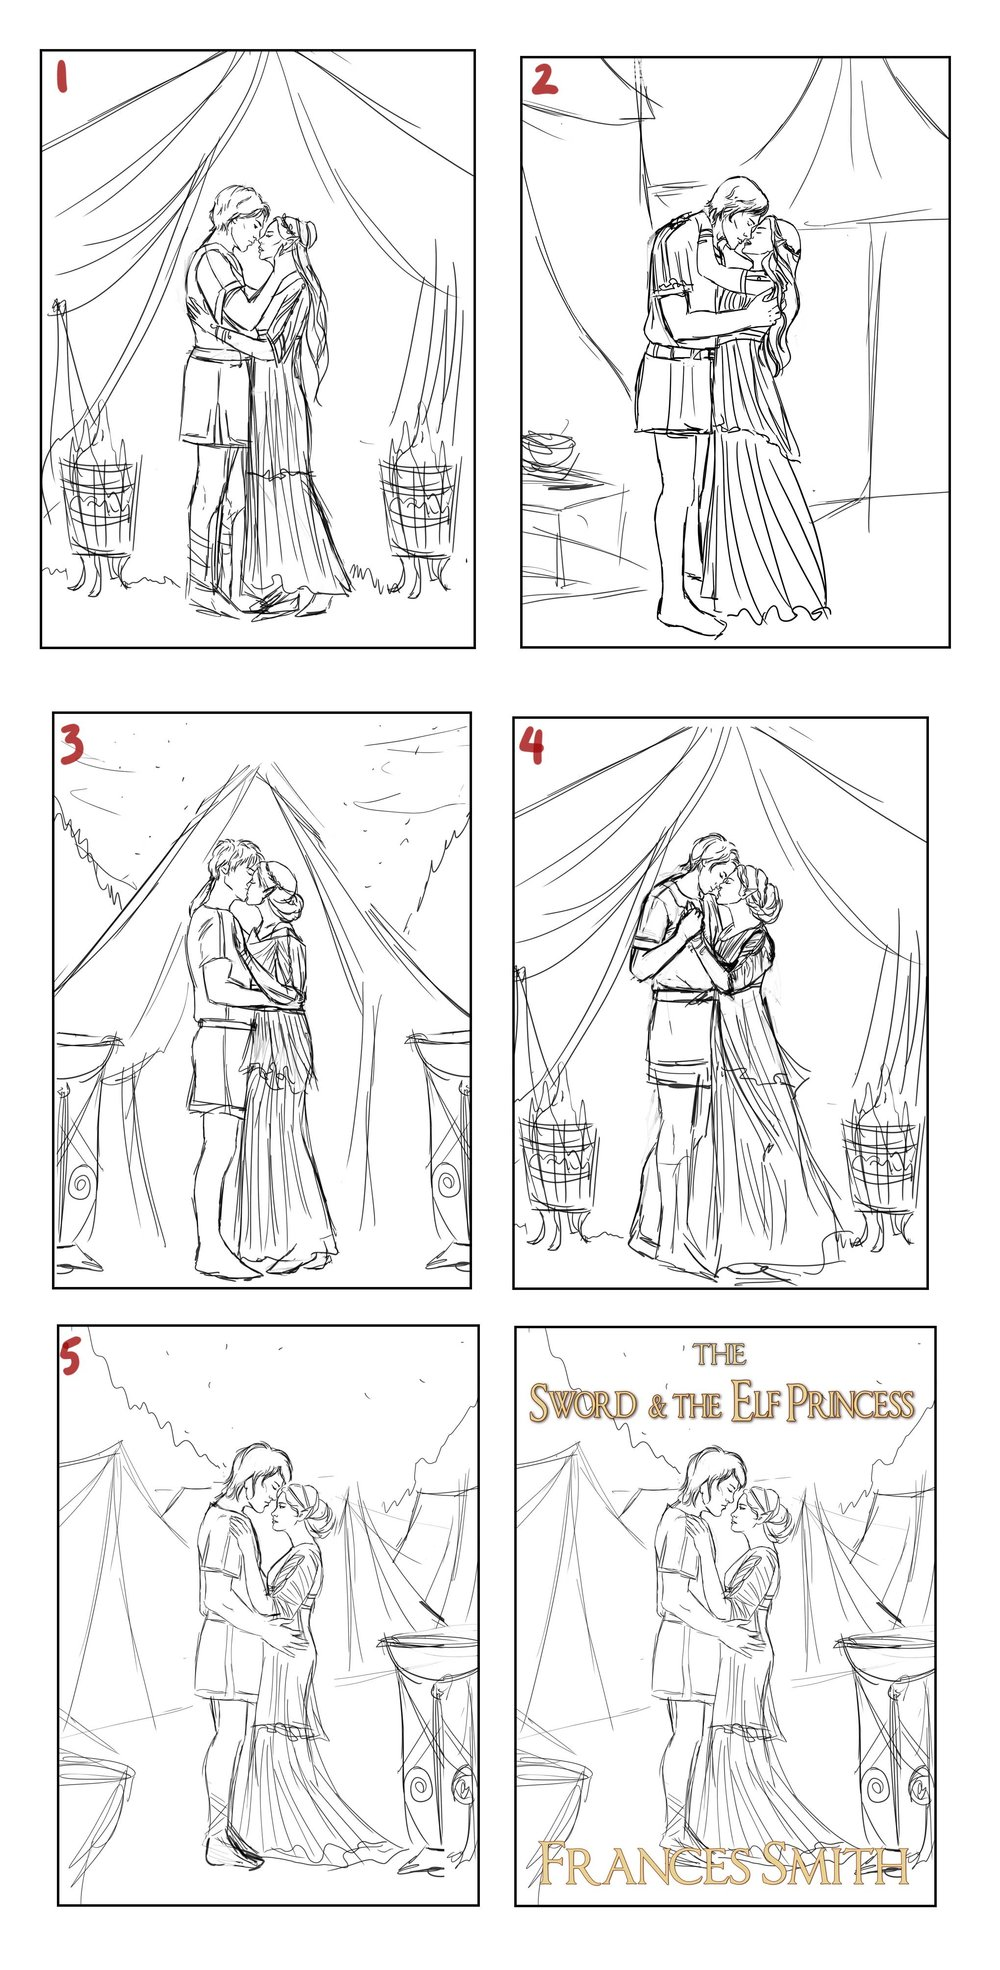 Some thumbnail sketches with a final showing where the text would go, because this was already fairly well established. The brief was an elf maiden with silver hair and Michael's brother kissing or touching faces, or something fairly romantic. One of the challenges is that one of the main characters from the previous books has white hair, is not an elf, but I needed to try and make them look different enough.